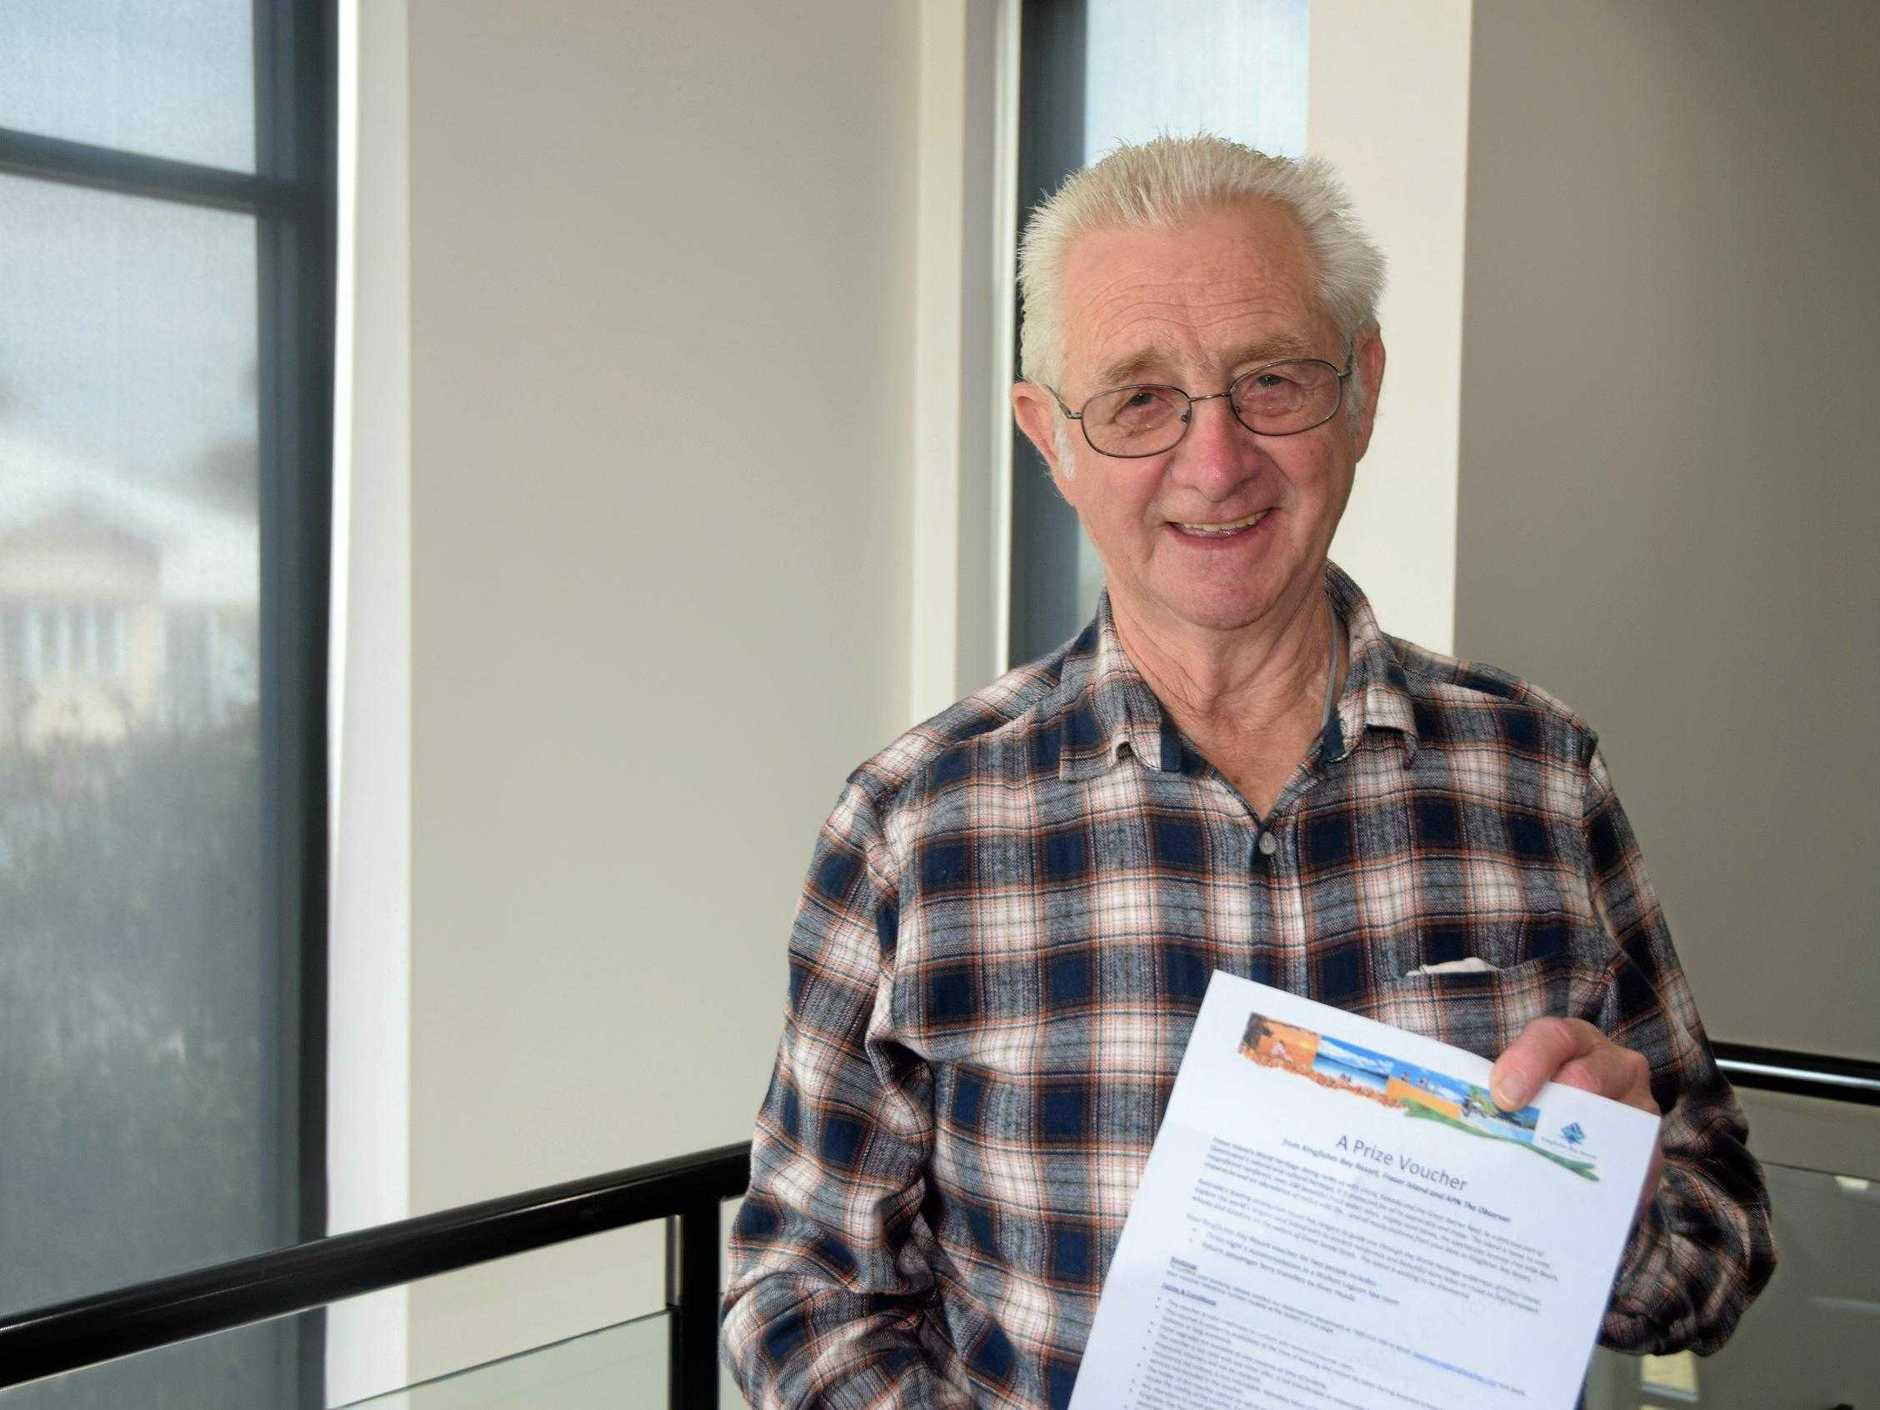 LUCKY: Lightning has struck twice for Gladstone man Ray Corry, who recently won a three-night holiday to Fraser Island's Kingfisher Bay Resort. Ray has also won The Observer's $1000 fuel card competition in April 2018.